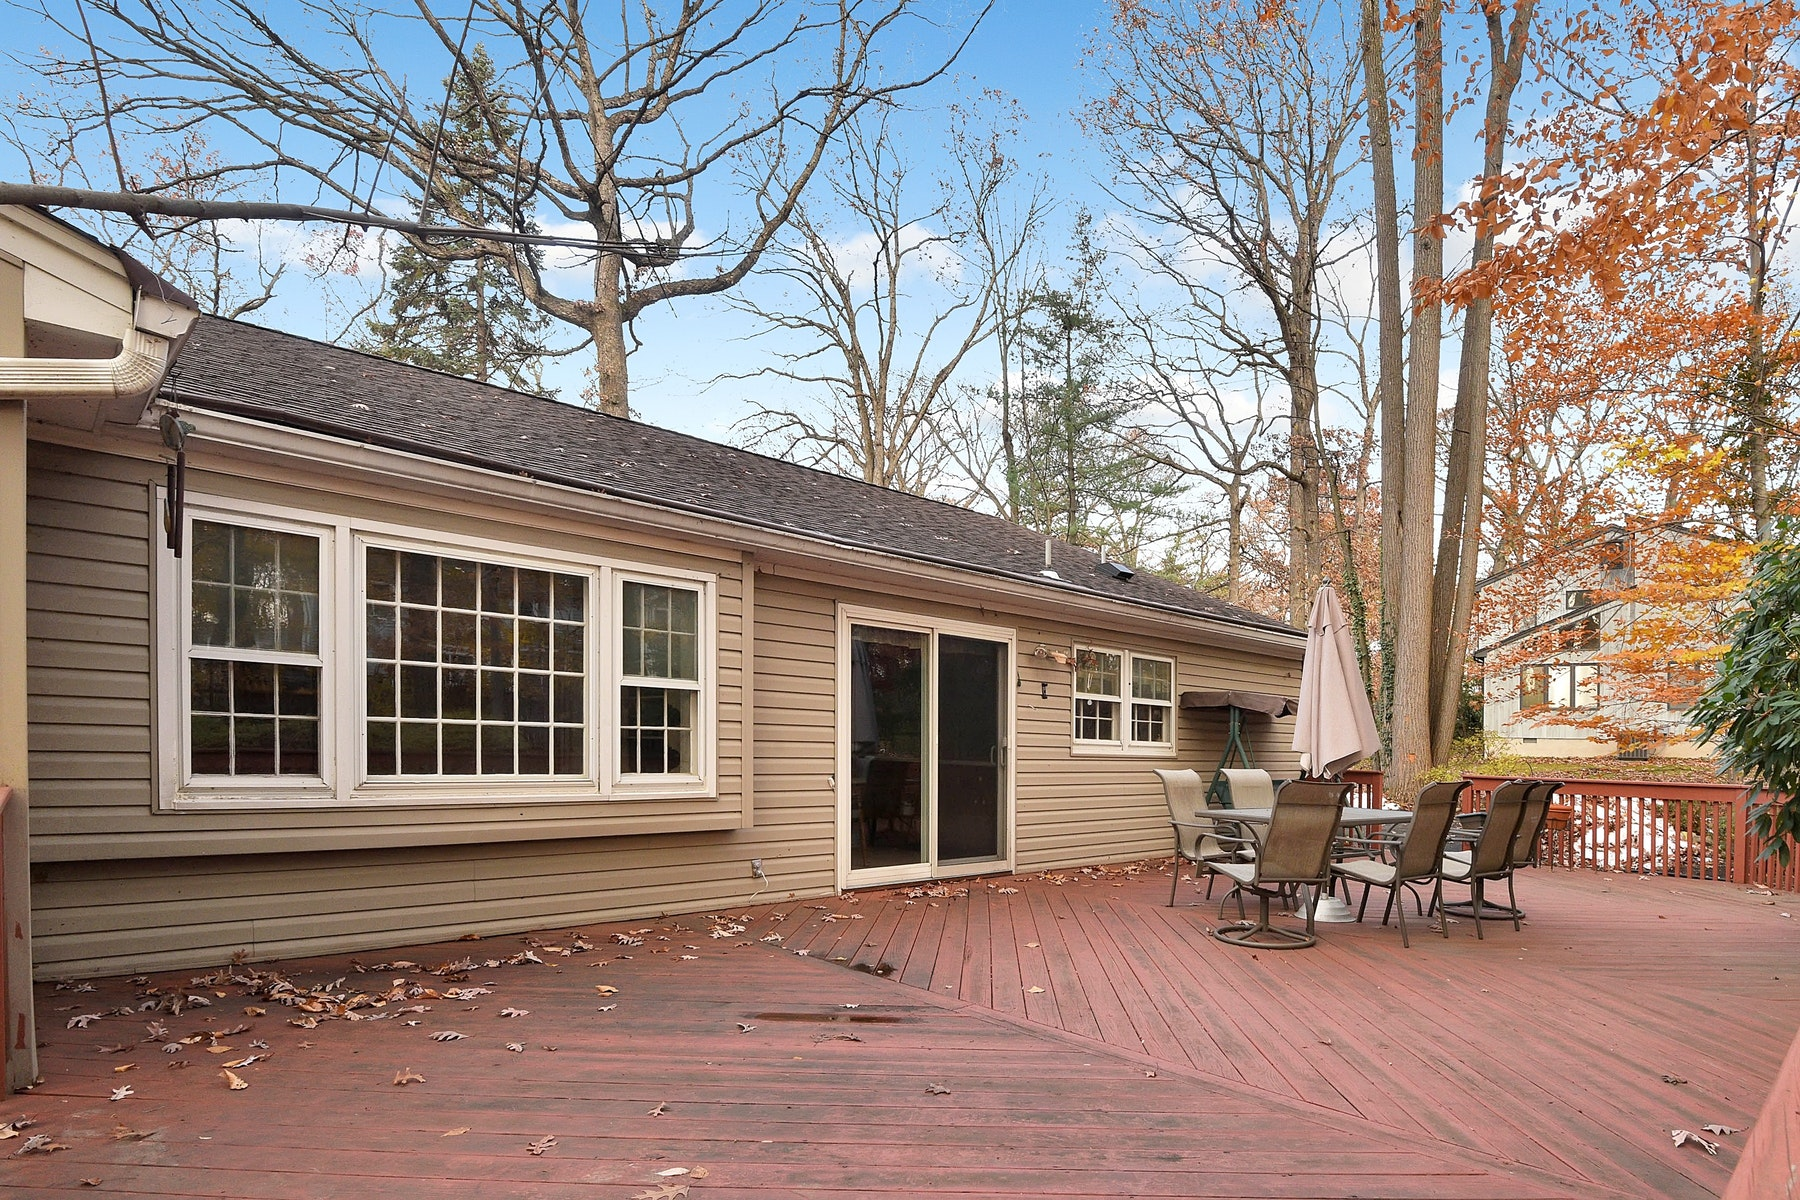 Single Family Home for Sale at Wonderful Four Bedroom Home In Woodcliff Lake. 48 Kenwood Drive, Woodcliff Lake, New Jersey 07677 United States